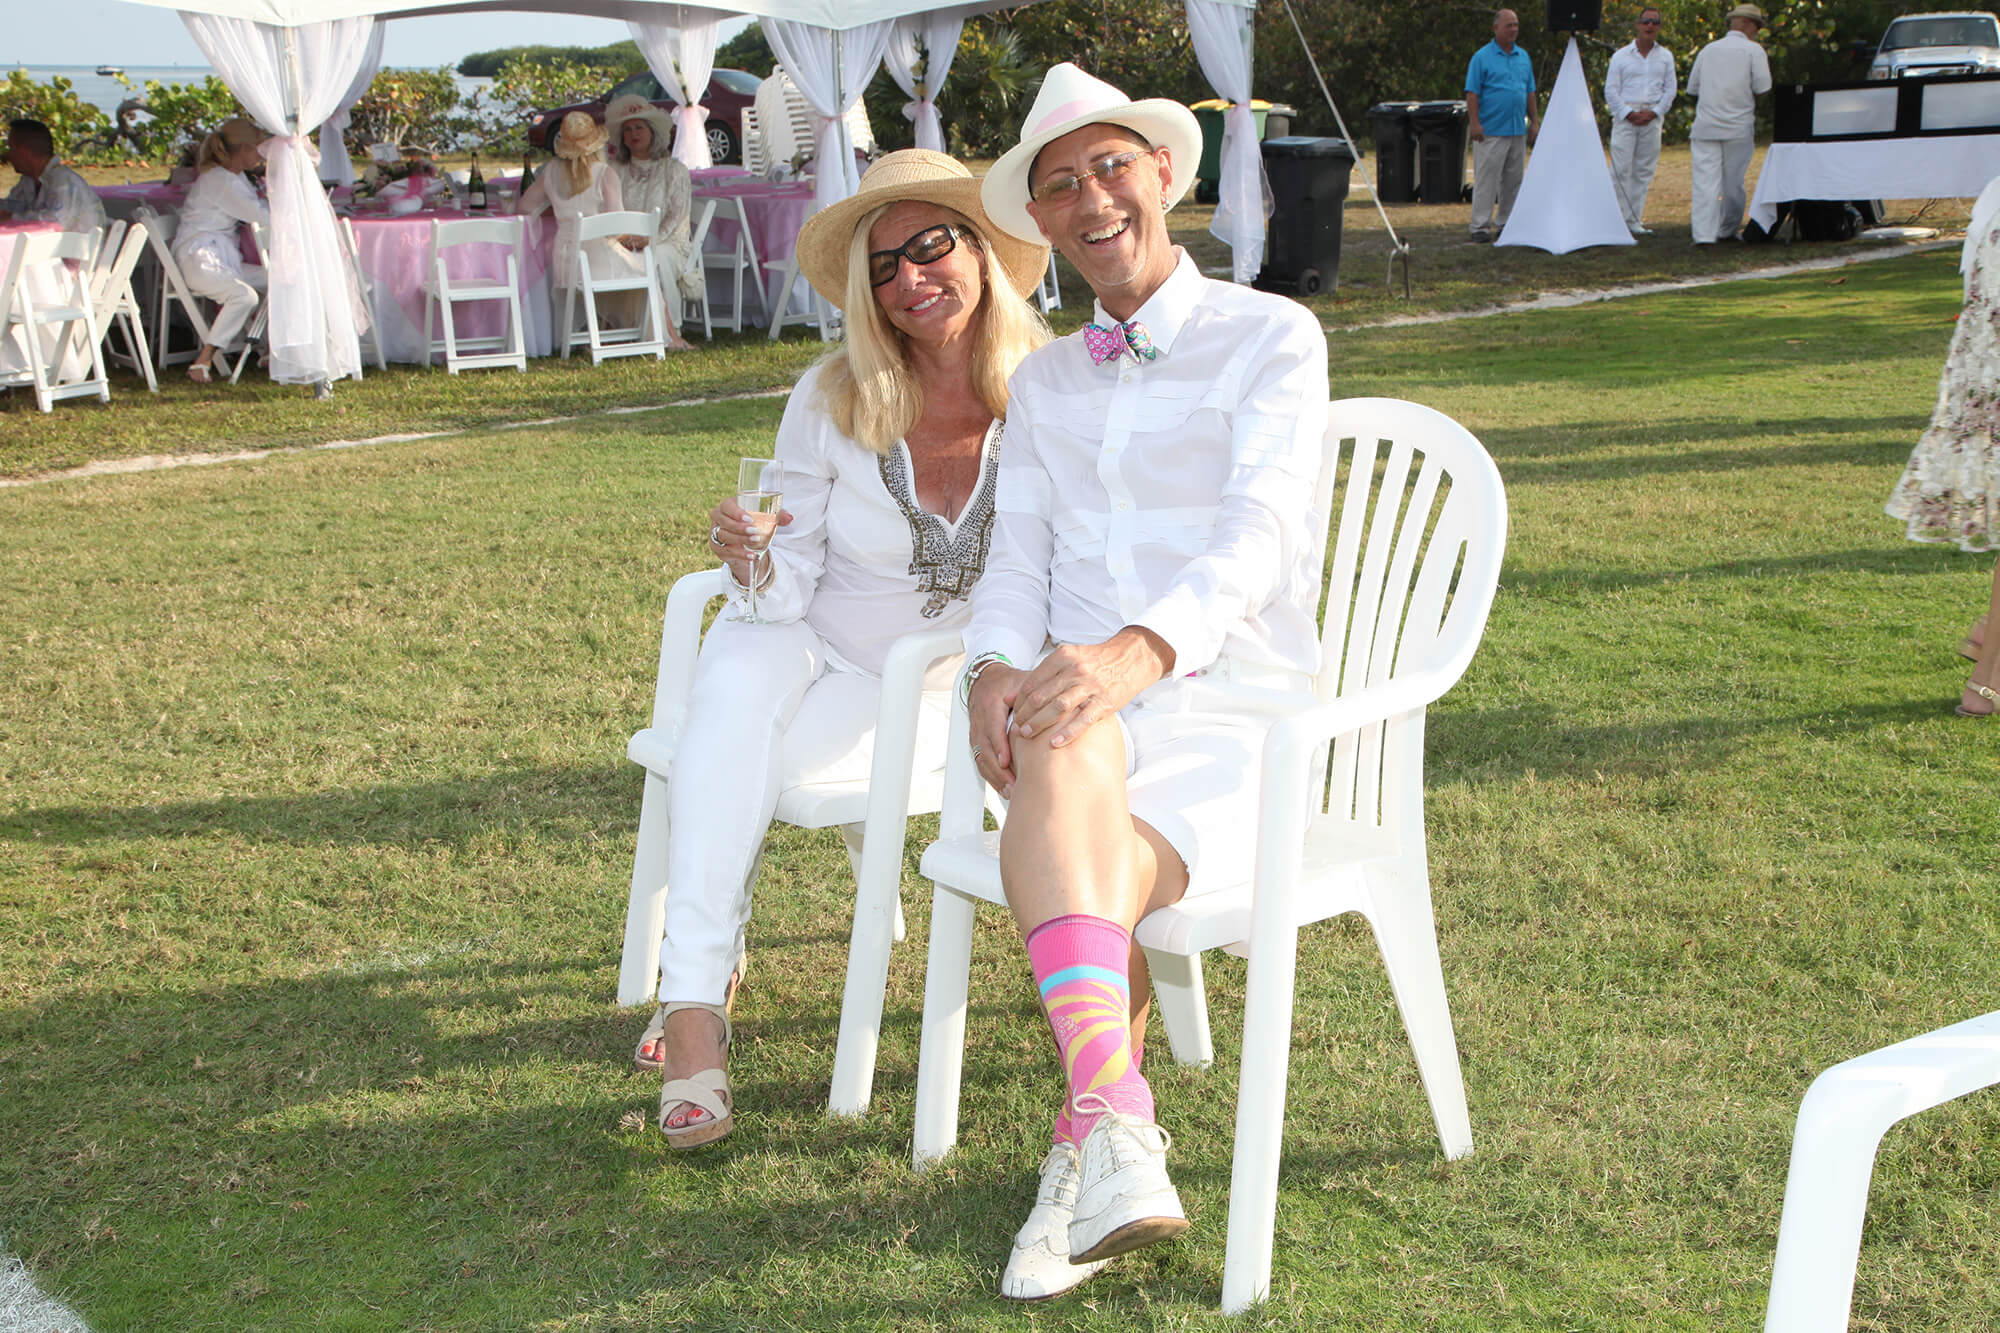 Croquet 2015, credit Carol Tedesco